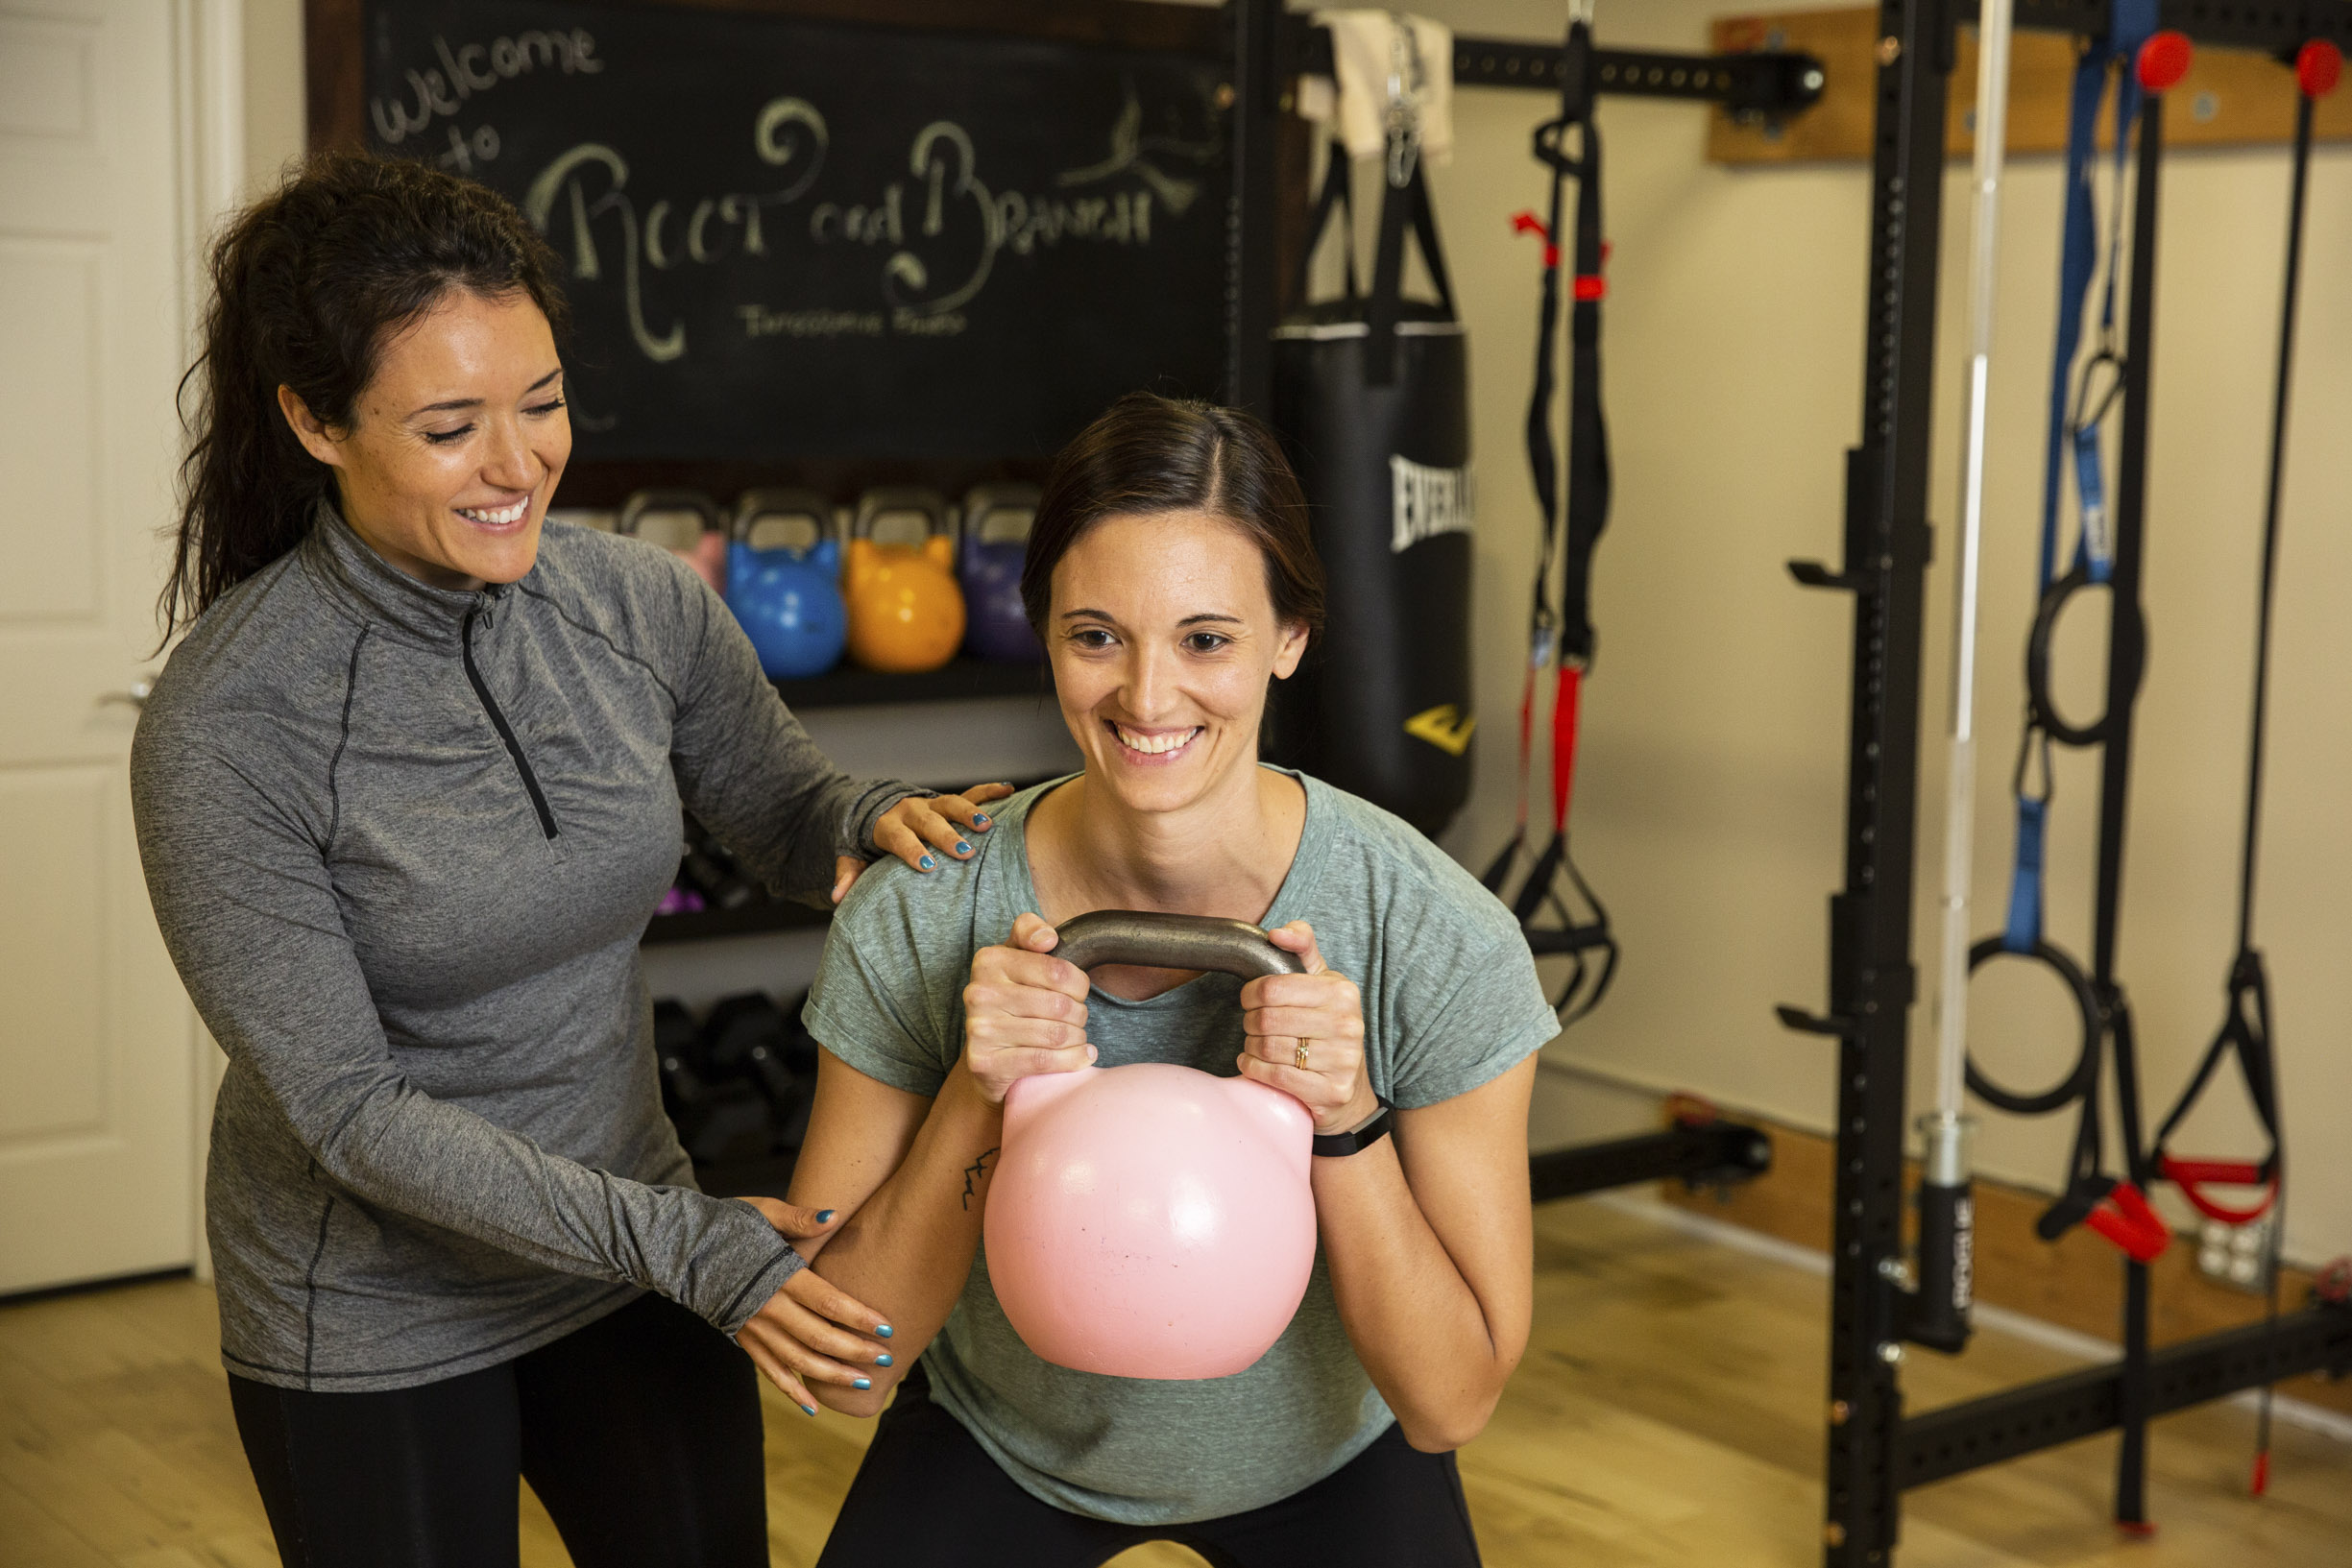 Better movement from personal training sessions with Gina Daley at Root & Branch in Portland, Oregon